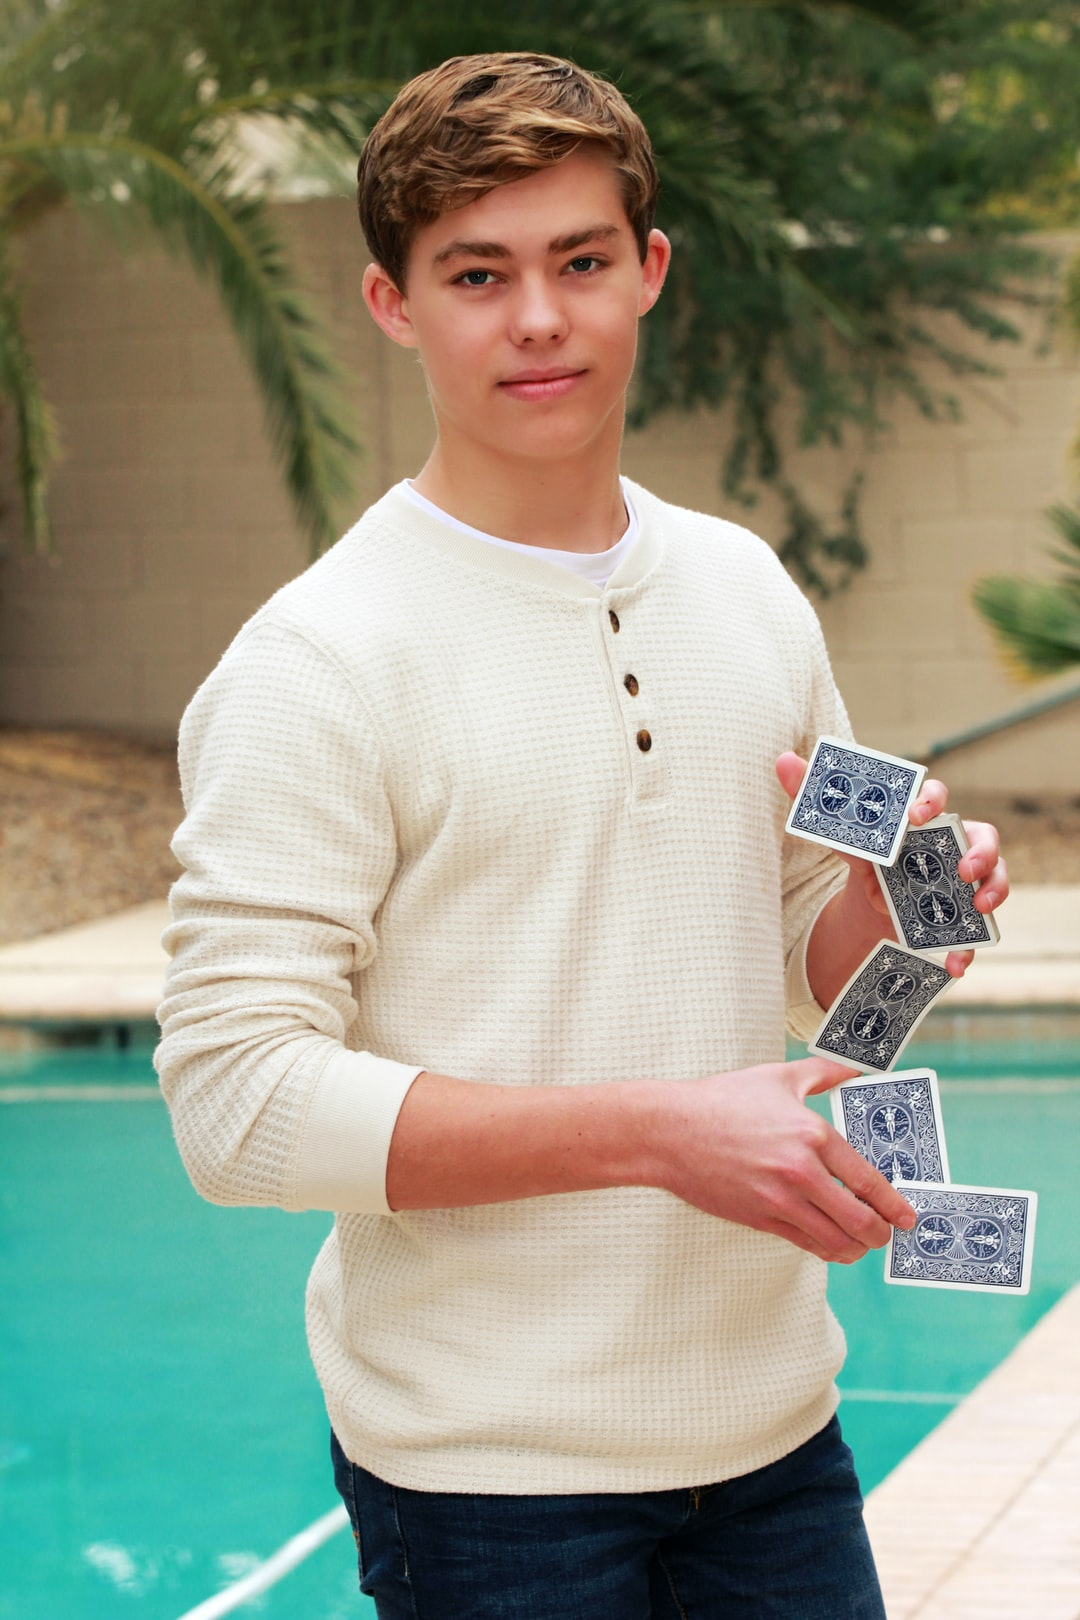 A boy holds cards in a difficult position.